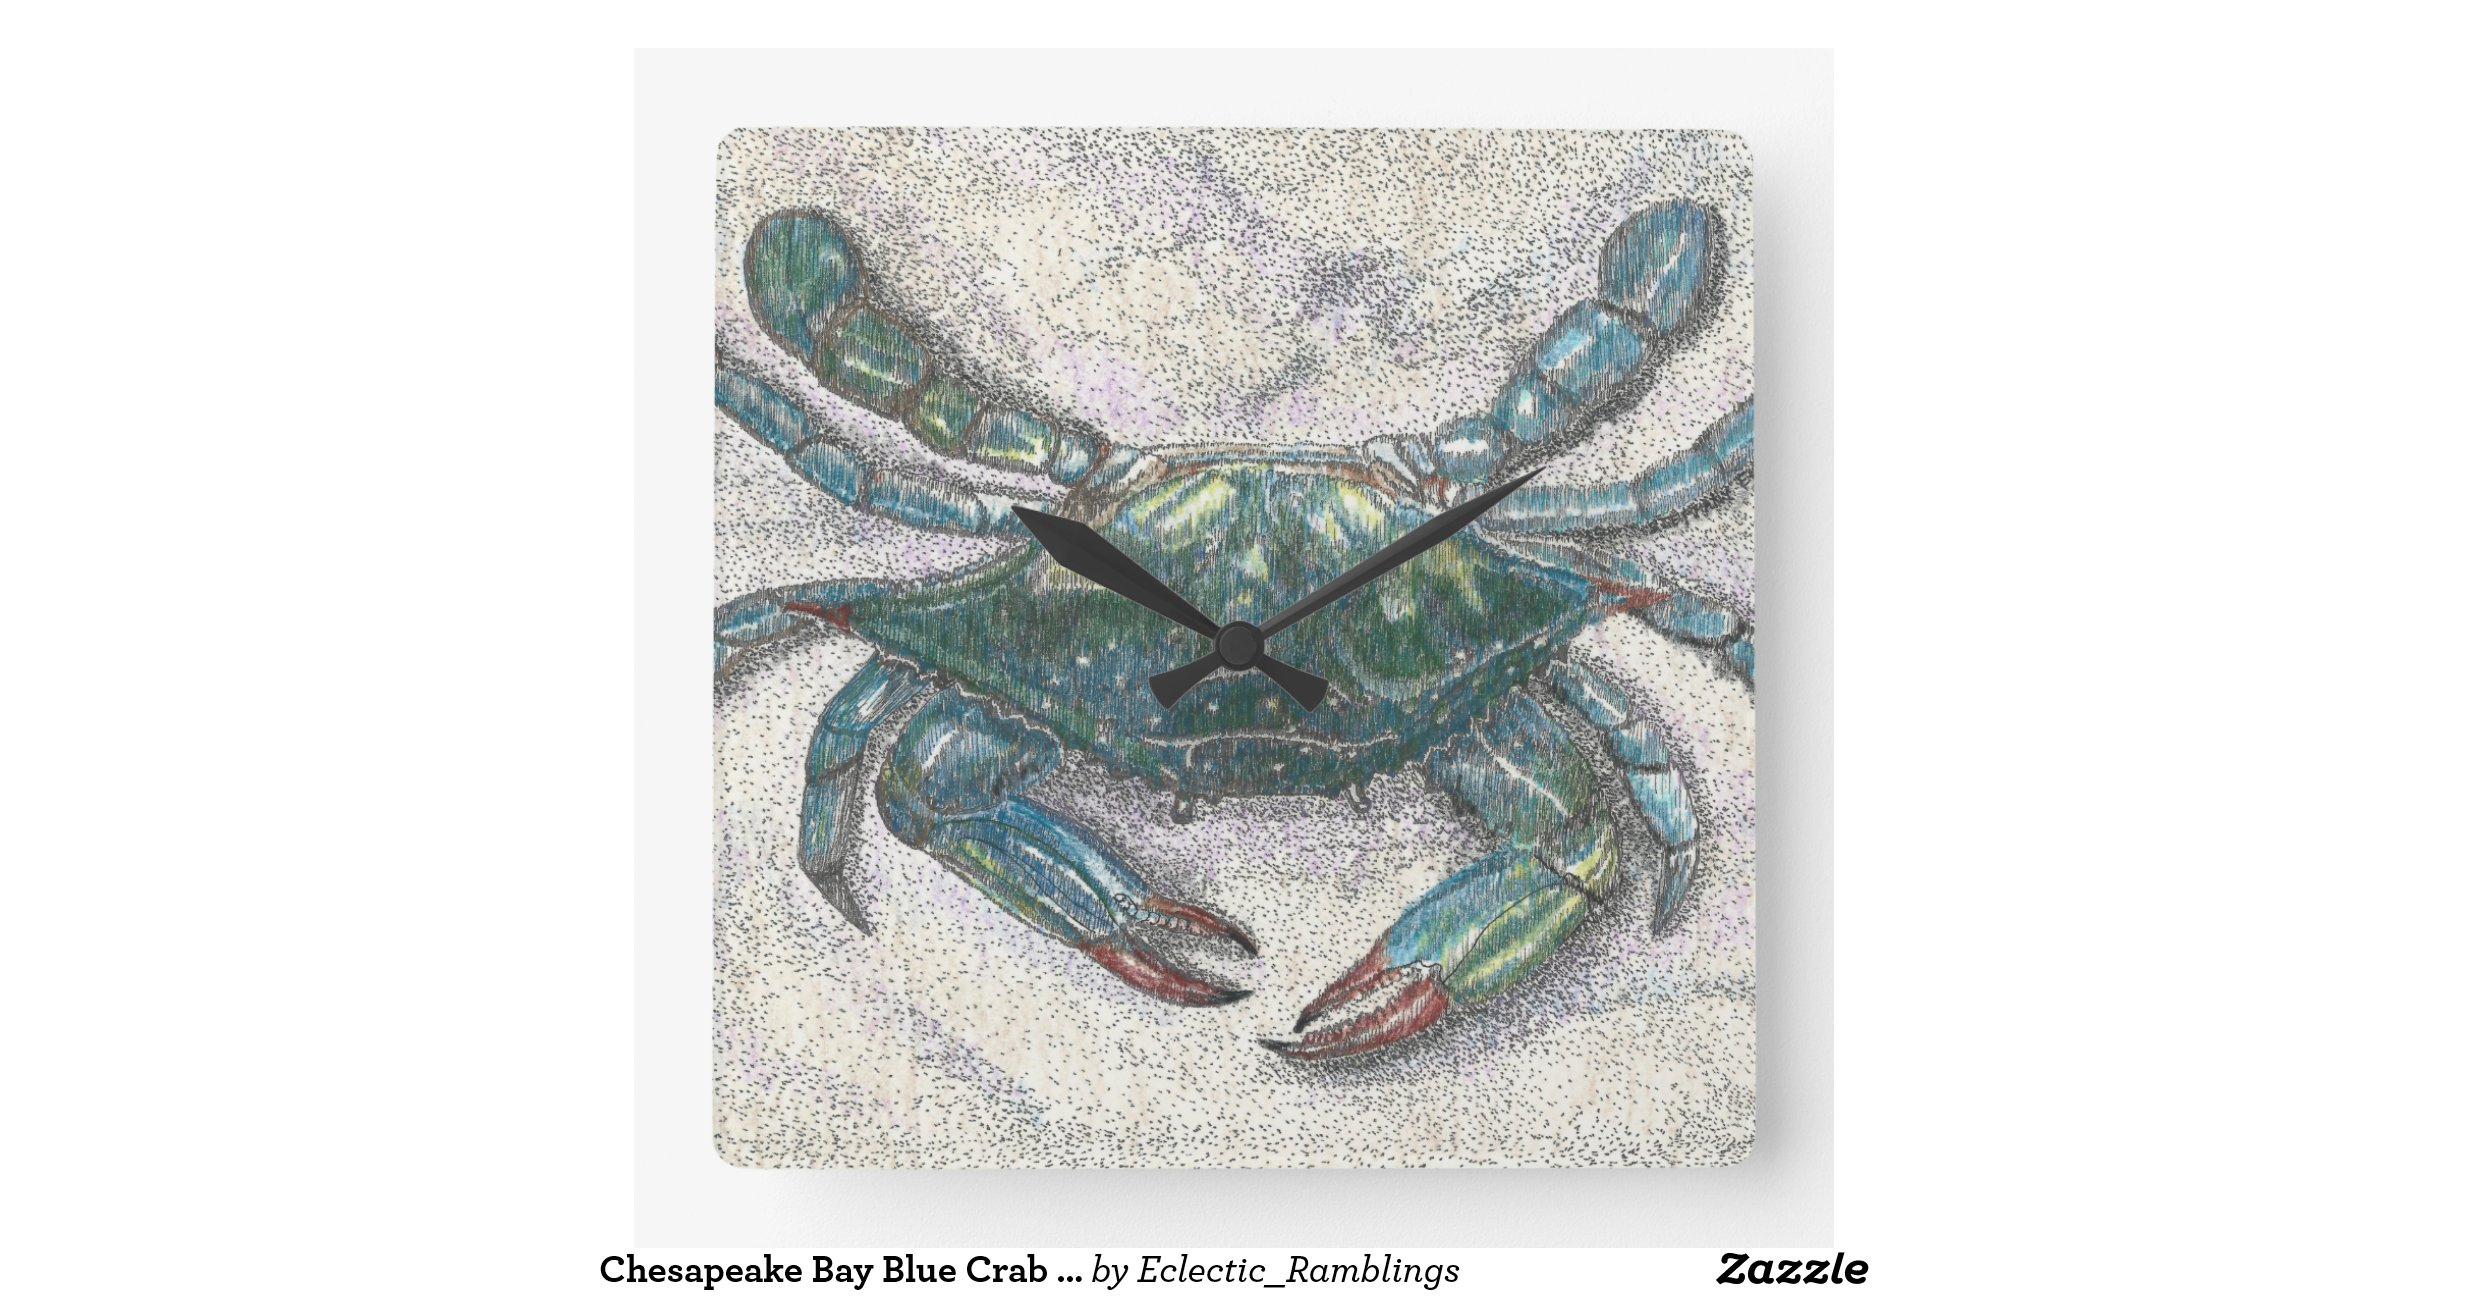 how to eat chesapeake bay blue crab